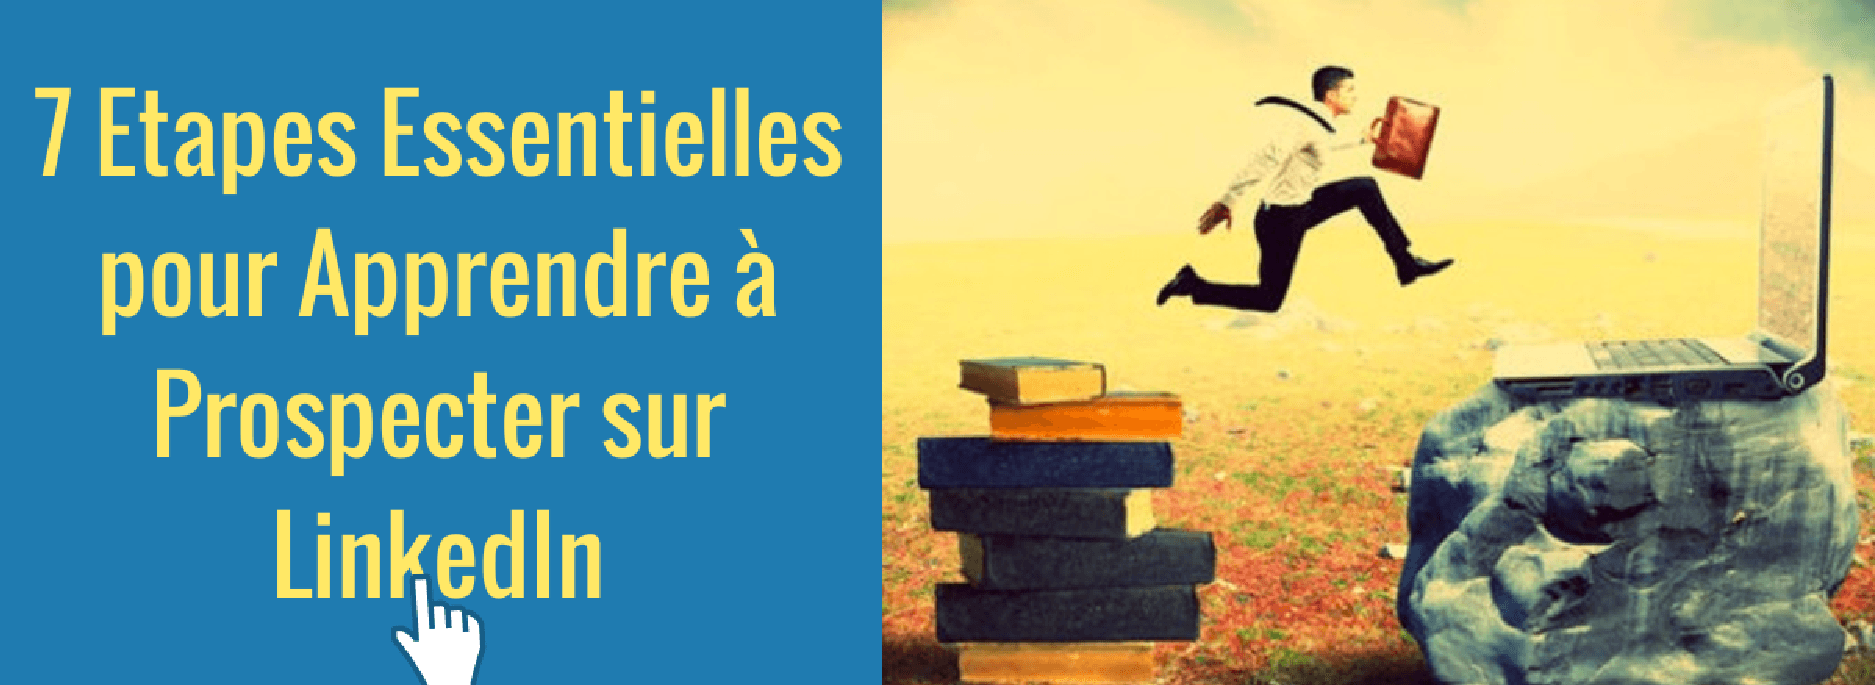 7 étapes Formation linkedin prospection